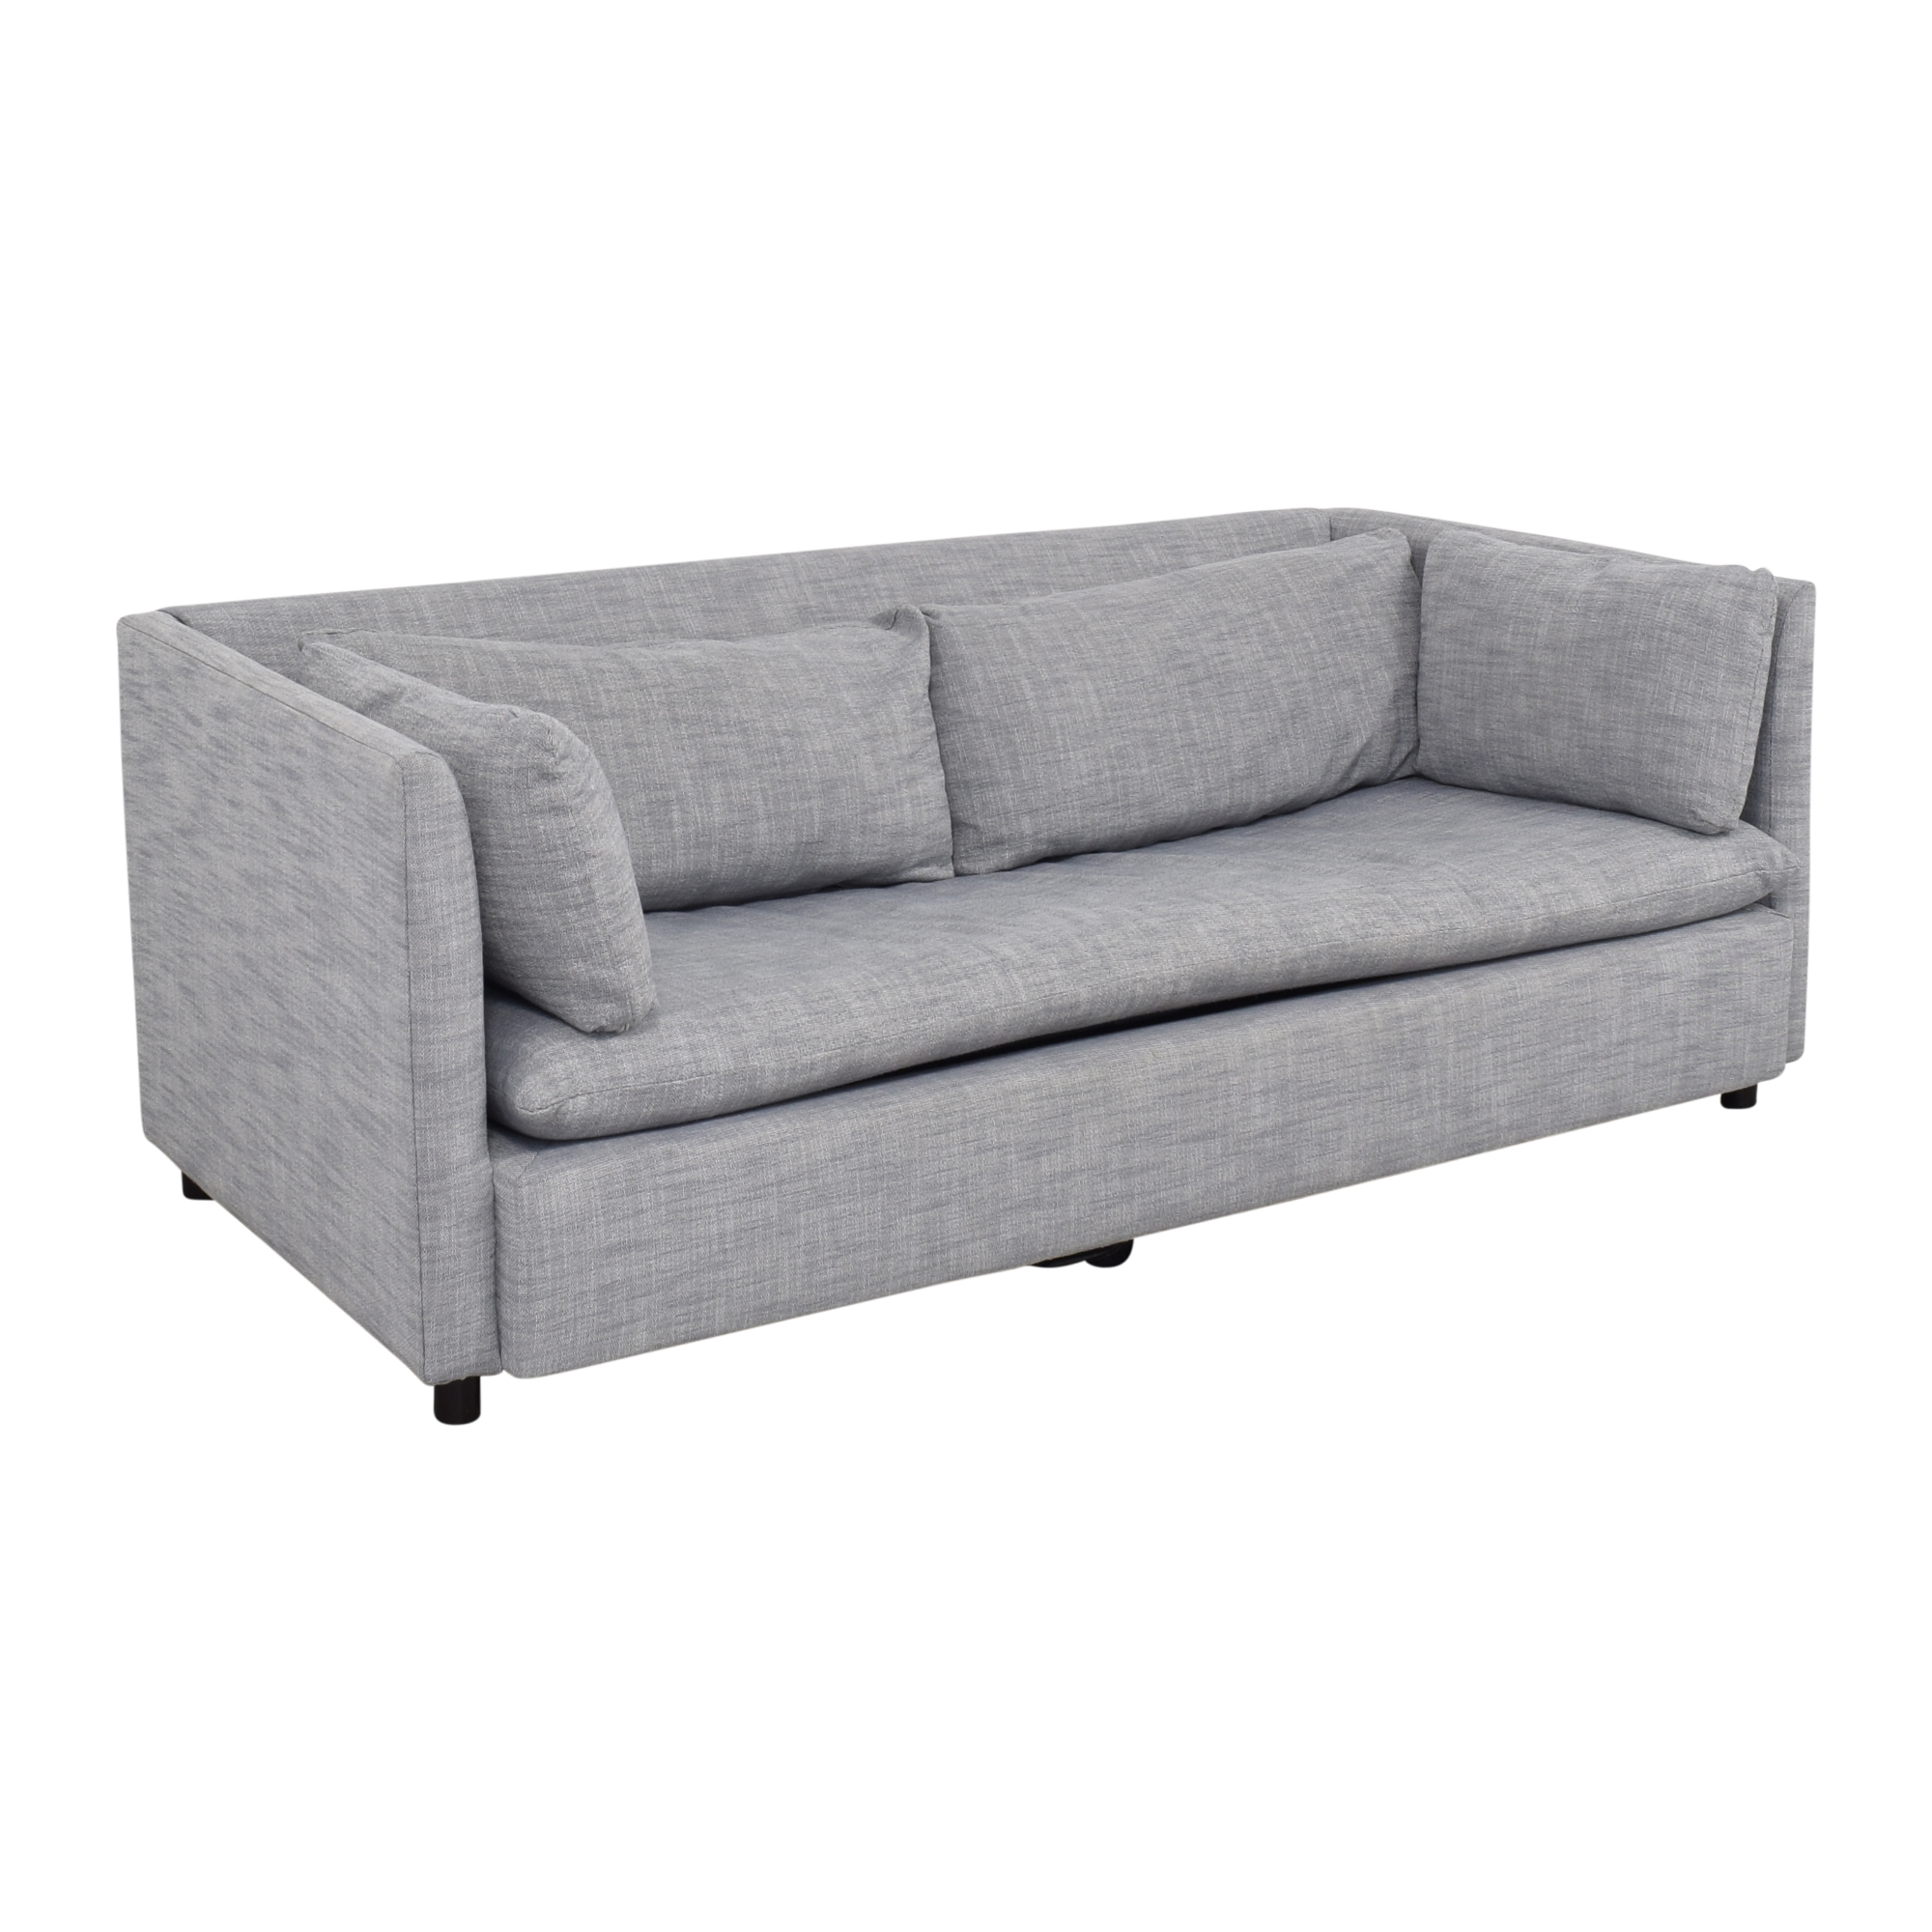 buy West Elm Shelter Queen Sleeper Sofa West Elm Sofa Beds